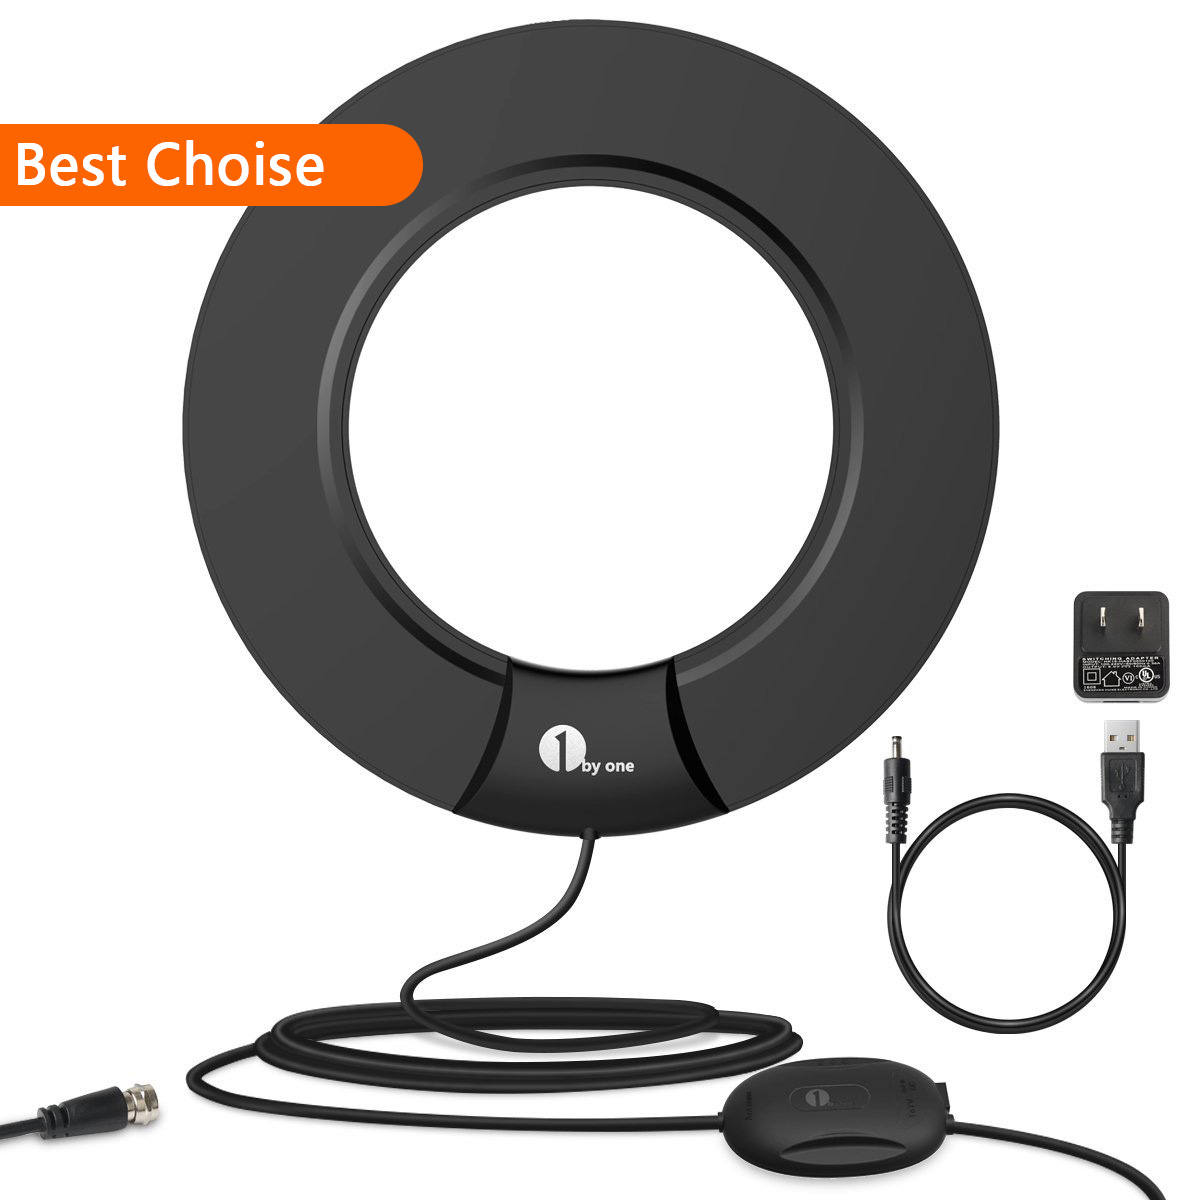 1byone Tv Antenna 60 Miles With Smart Box Omni Directional And 10ft